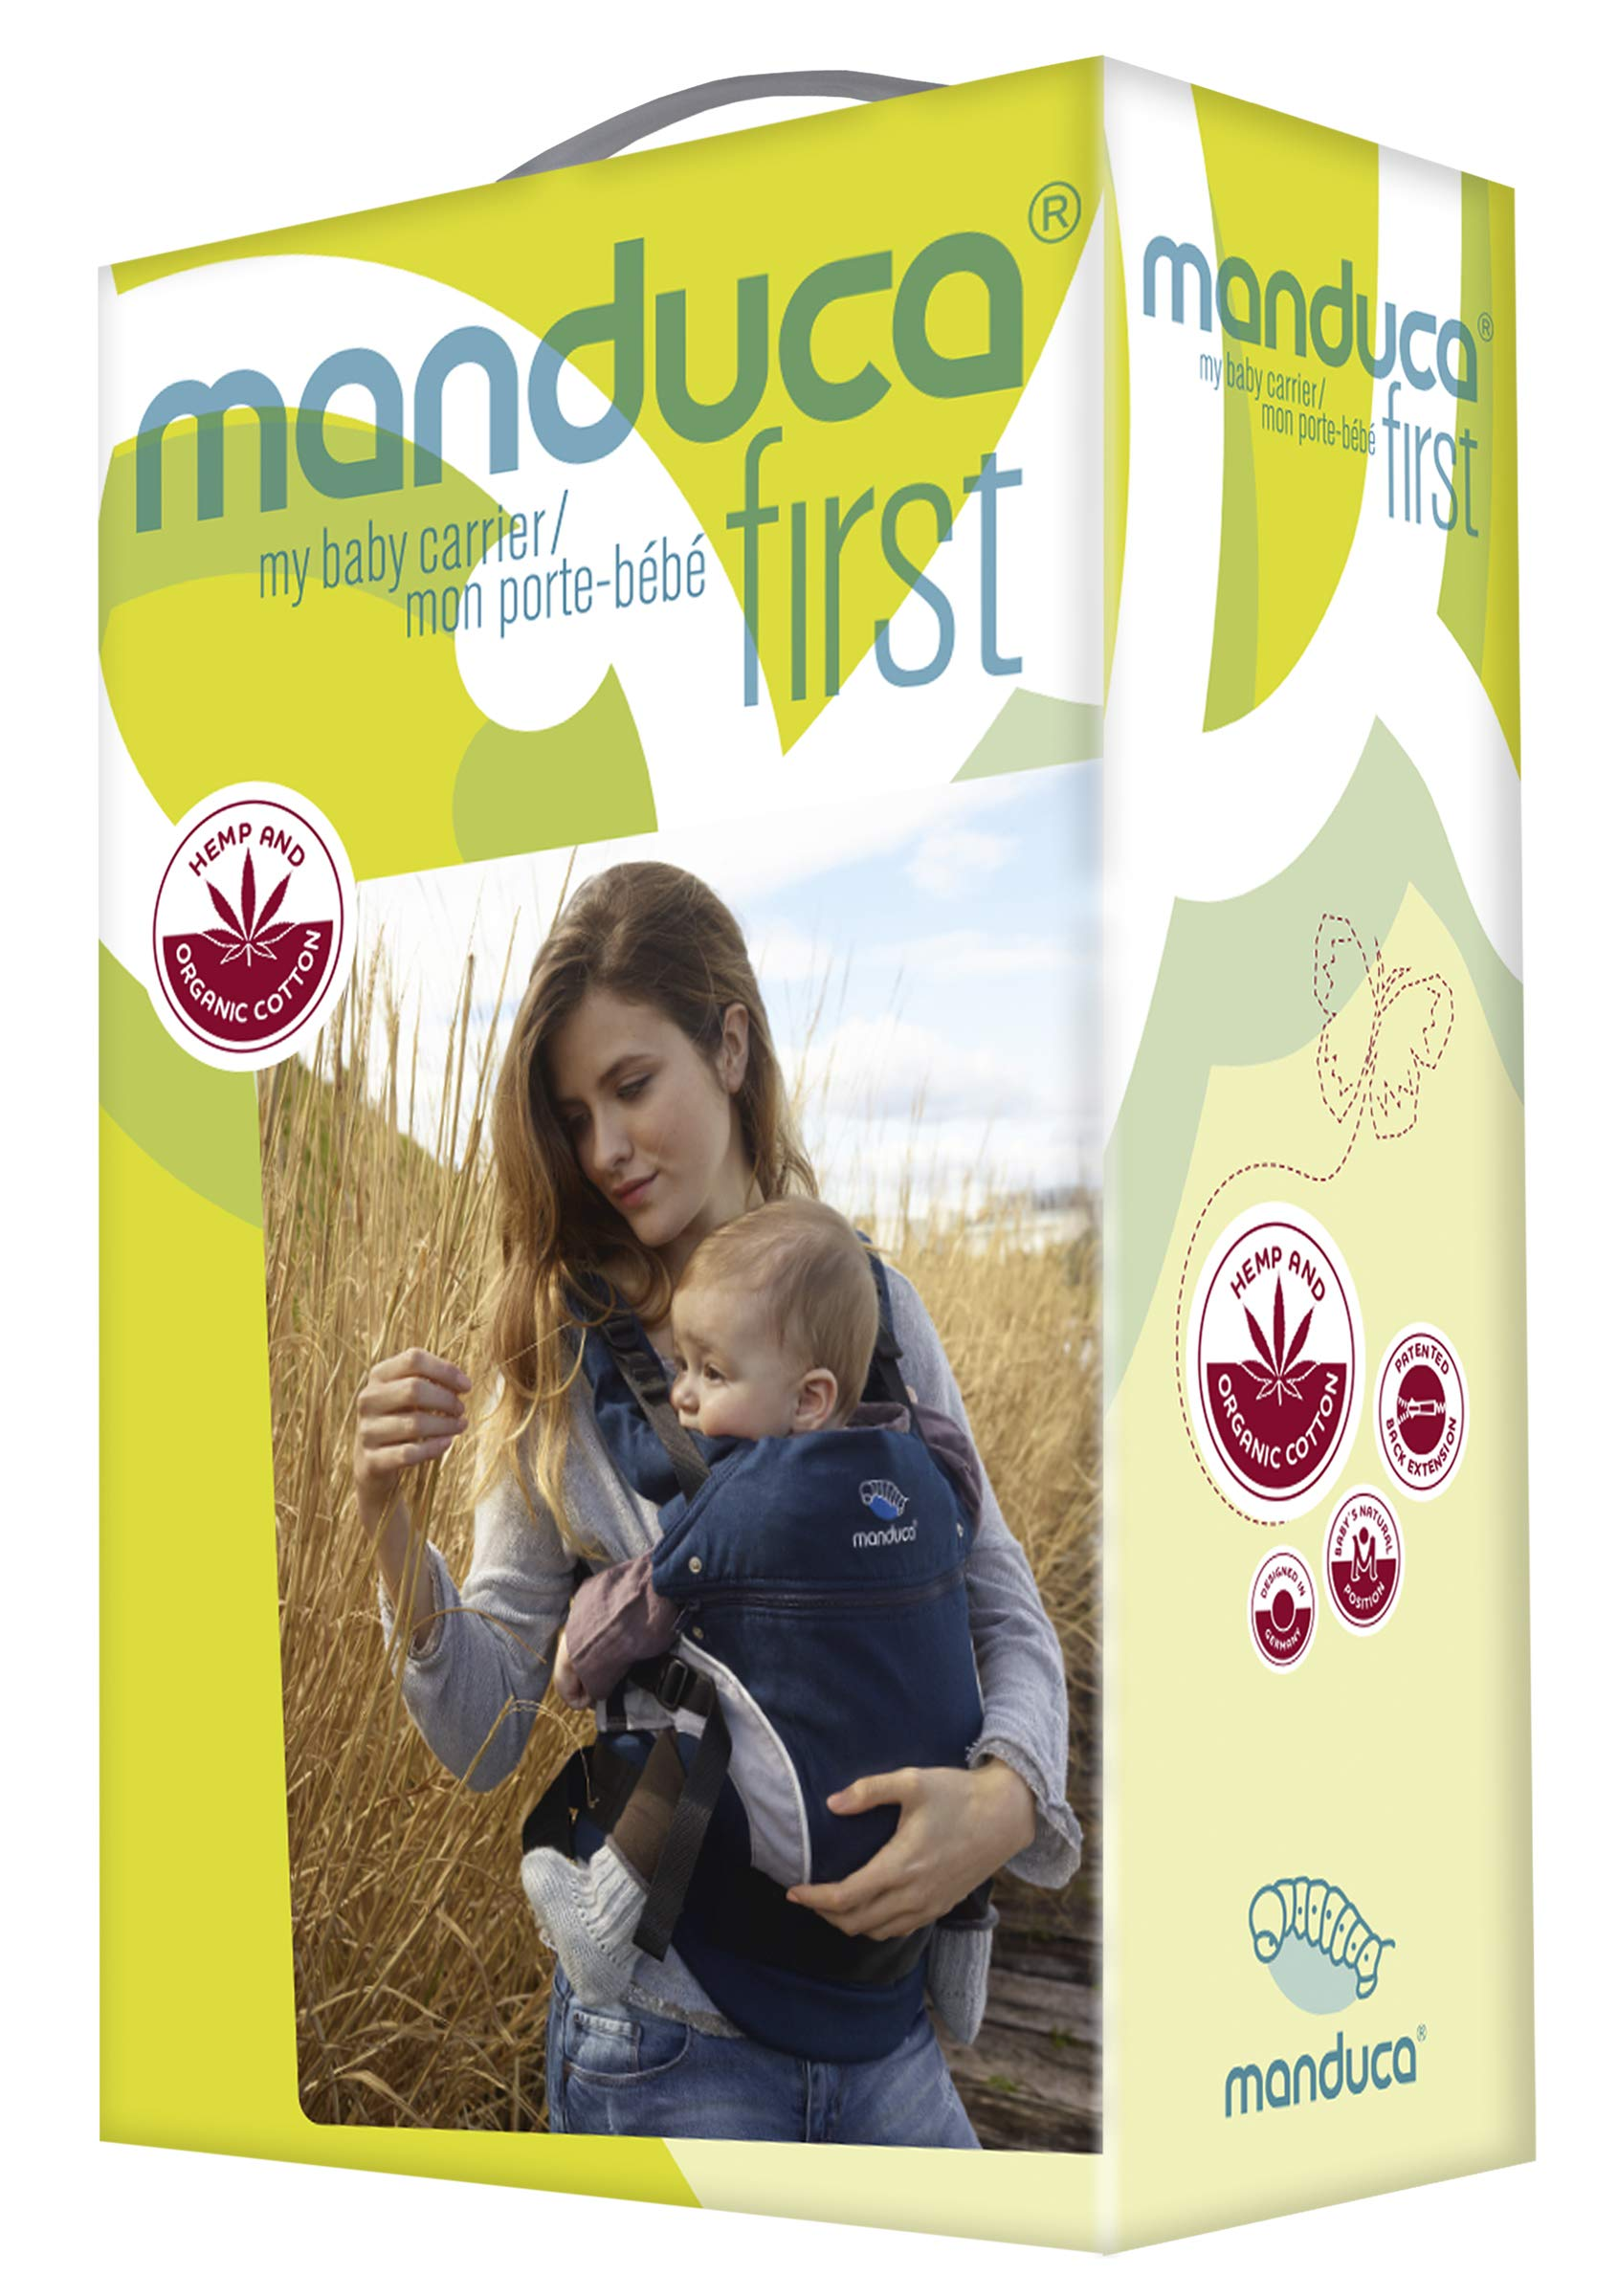 manduca First Baby Carrier > HempCotton Petrol Blue - Brown < Ergonomic Baby & Child Carrier, Soft & Sturdy Canvas (Organic Cotton & Hemp), Front, Hip & Back Carry, for Newborn to Toddlers up to 20kg Manduca manduca baby carrier First HempCotton: the original made of hemp & organic cotton with patented back extension, is already a classic. New features: Improved three-point-buckle (secure & easy to open) Integrated in every carrier: infant pouch (newborn insert), stowable headrest & sun protection for your baby, back extension (grows with your child); Optional accessories for newborns: Size-It (seat reducer) and Zip-In Ellipse Ergonomic design for men & women: Soft padded shoulder straps (multiple adjustable) & the anatomically shaped stable hipbelt (fits hips from 64cm to 140cm) ensure balanced weight distribution. No waist-belt extension needed 6